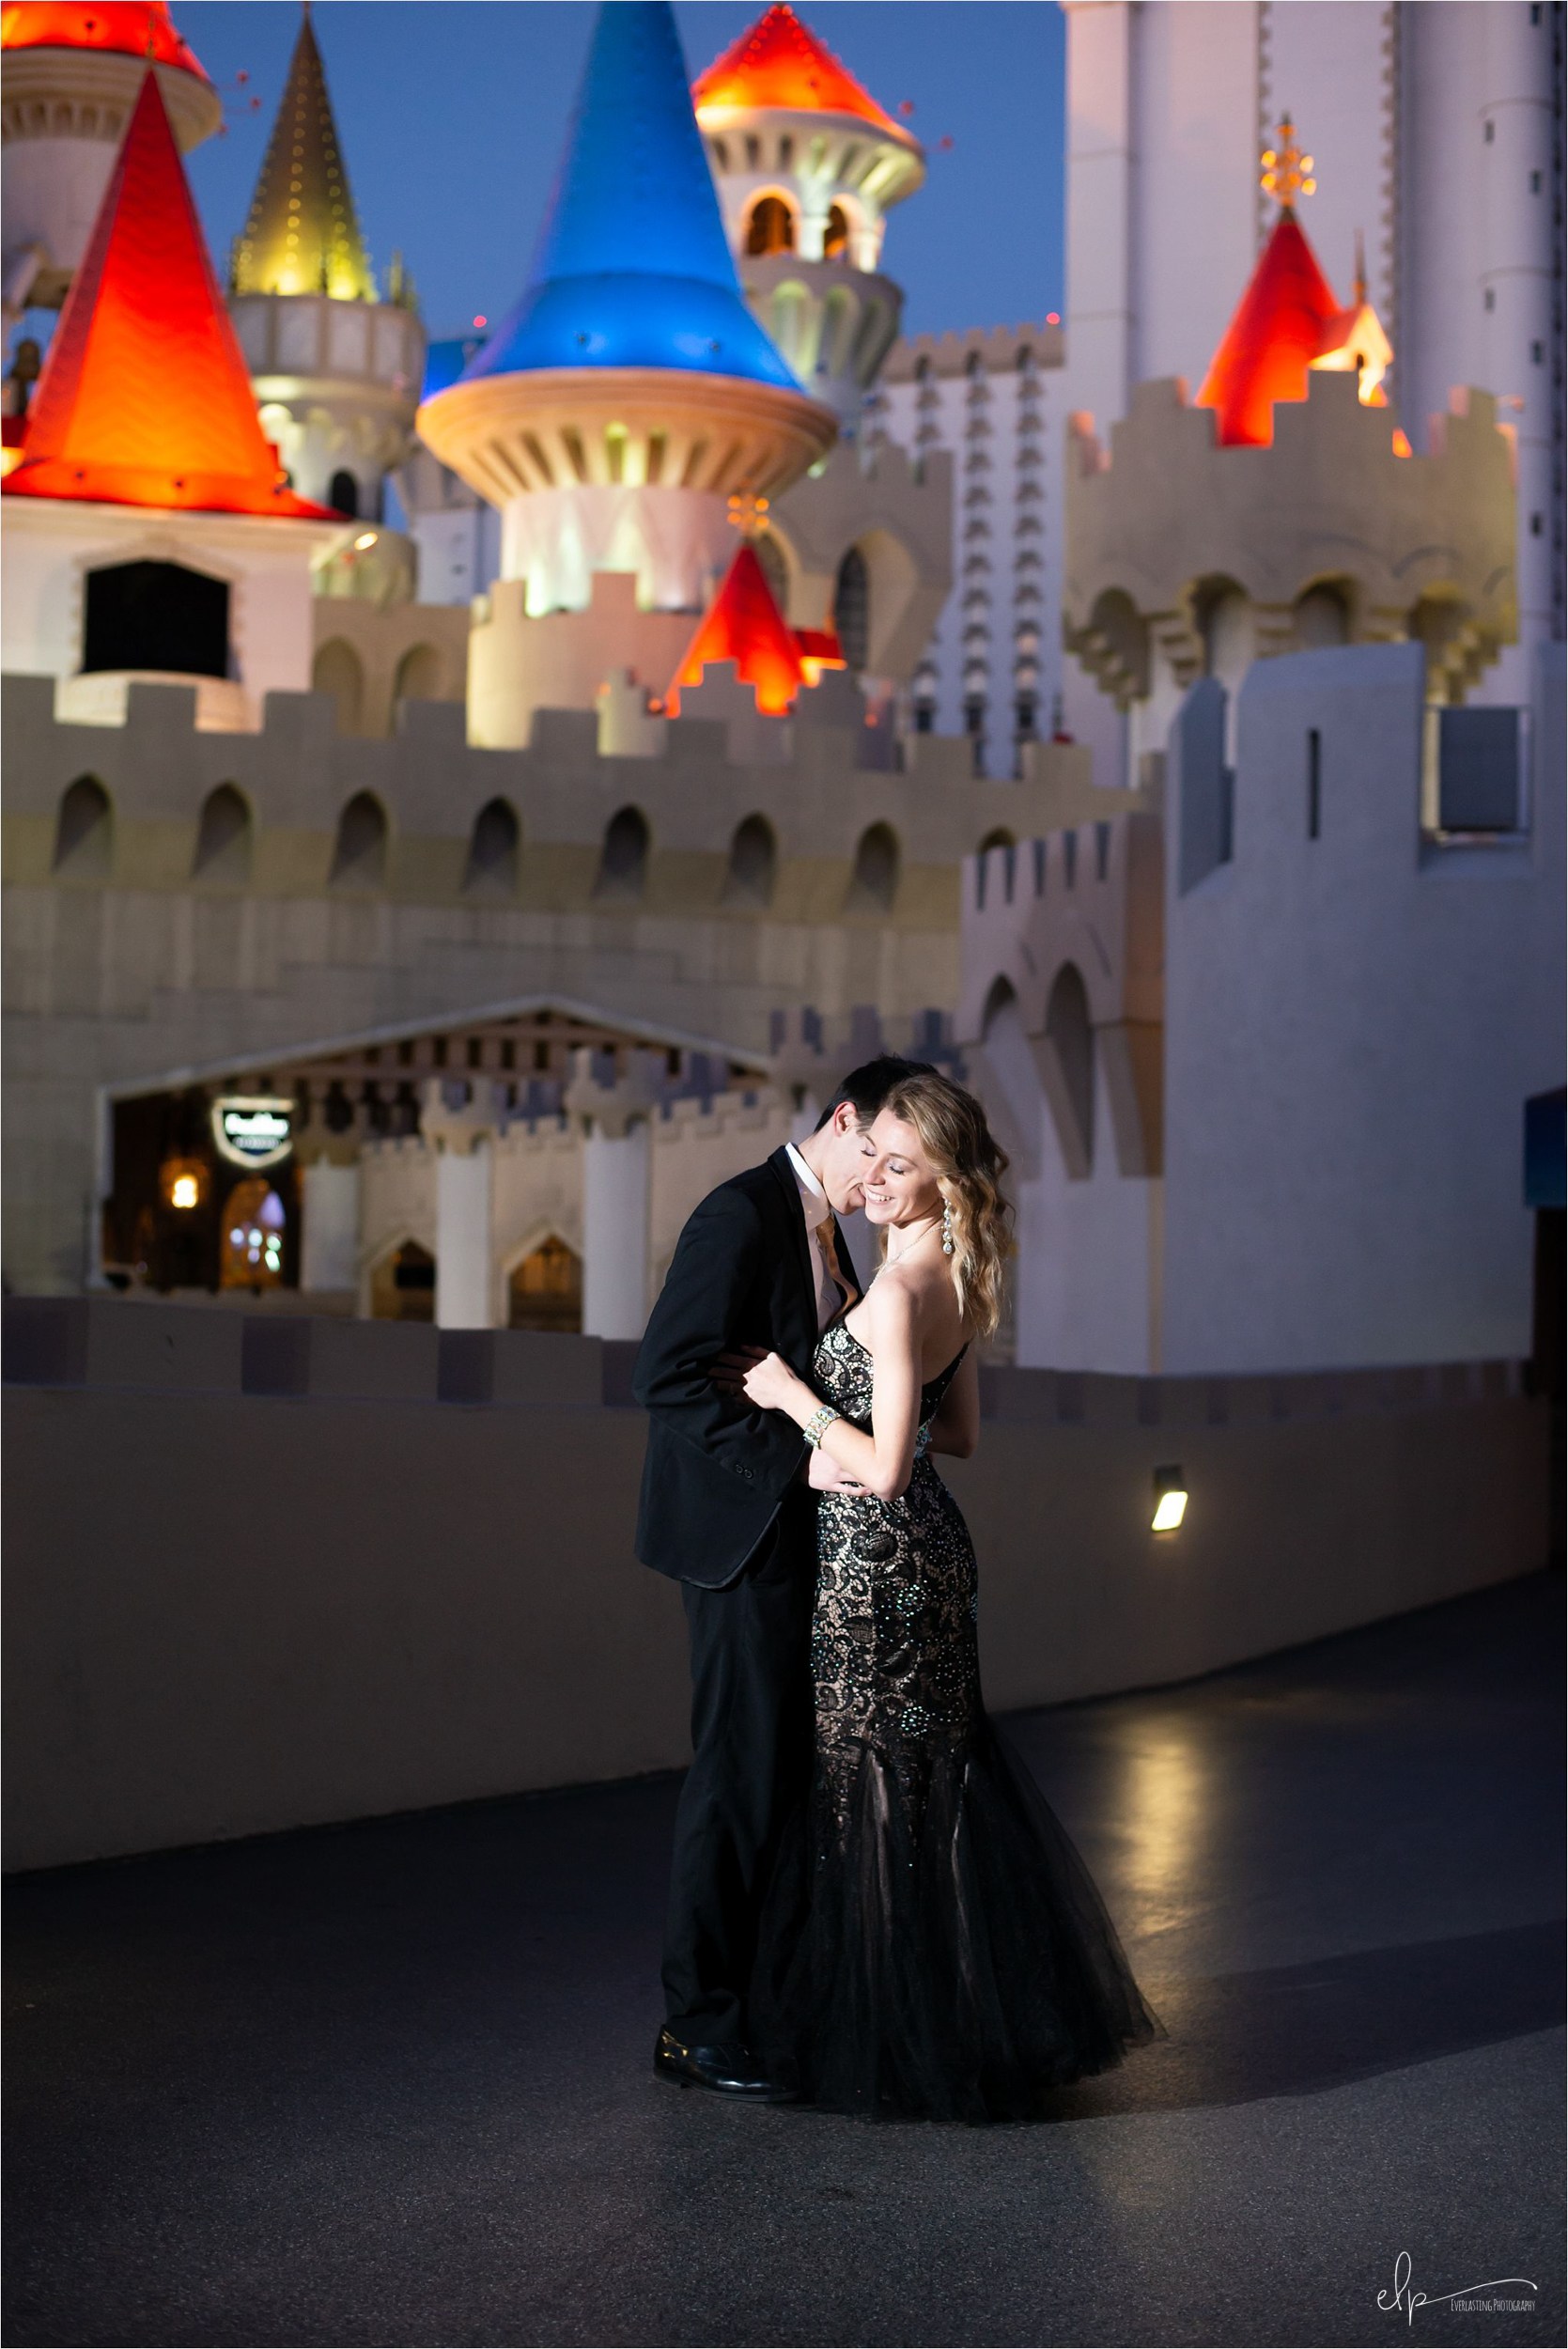 Engagement shoot at Las Vegas Excalibur Hotel & Casino.